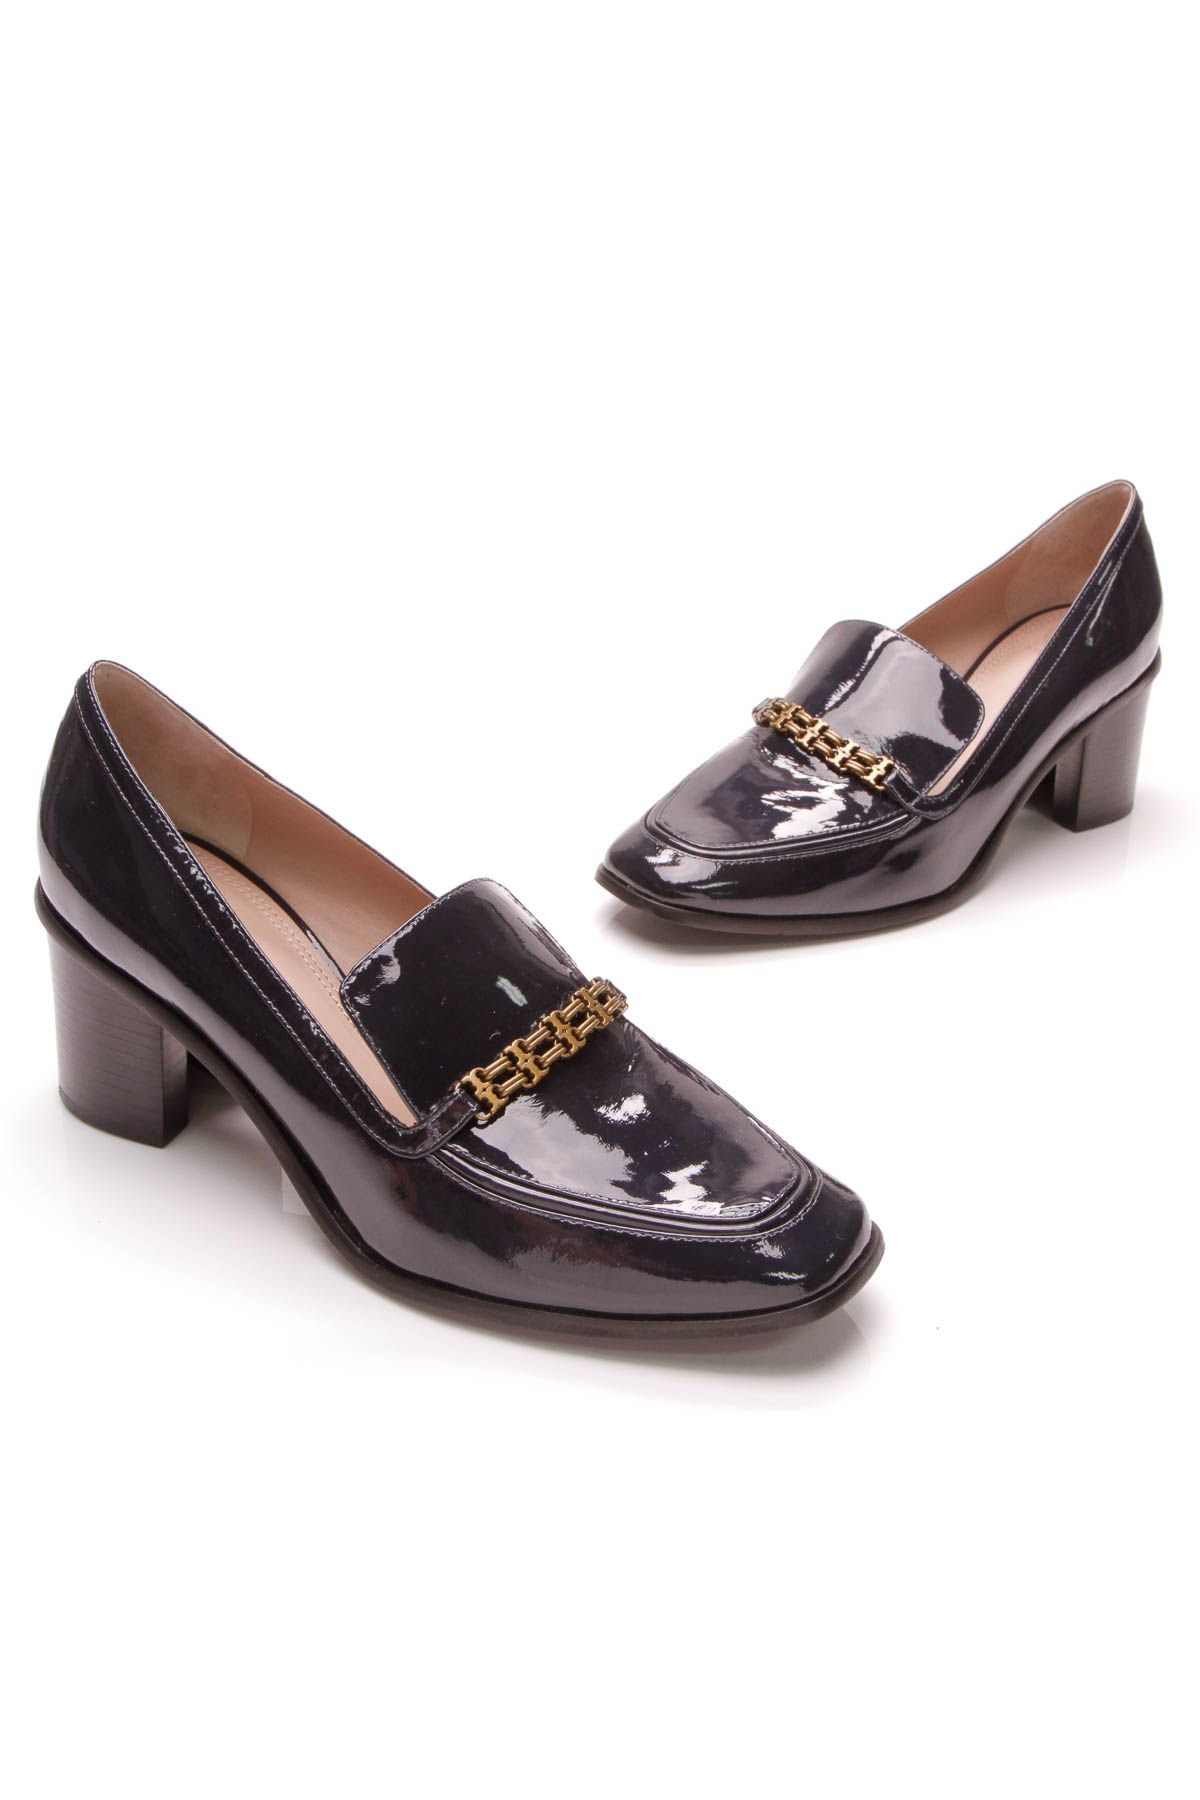 7d1915c0a7232b Gemini Link Heeled Loafers - Patent Loafers Size 10